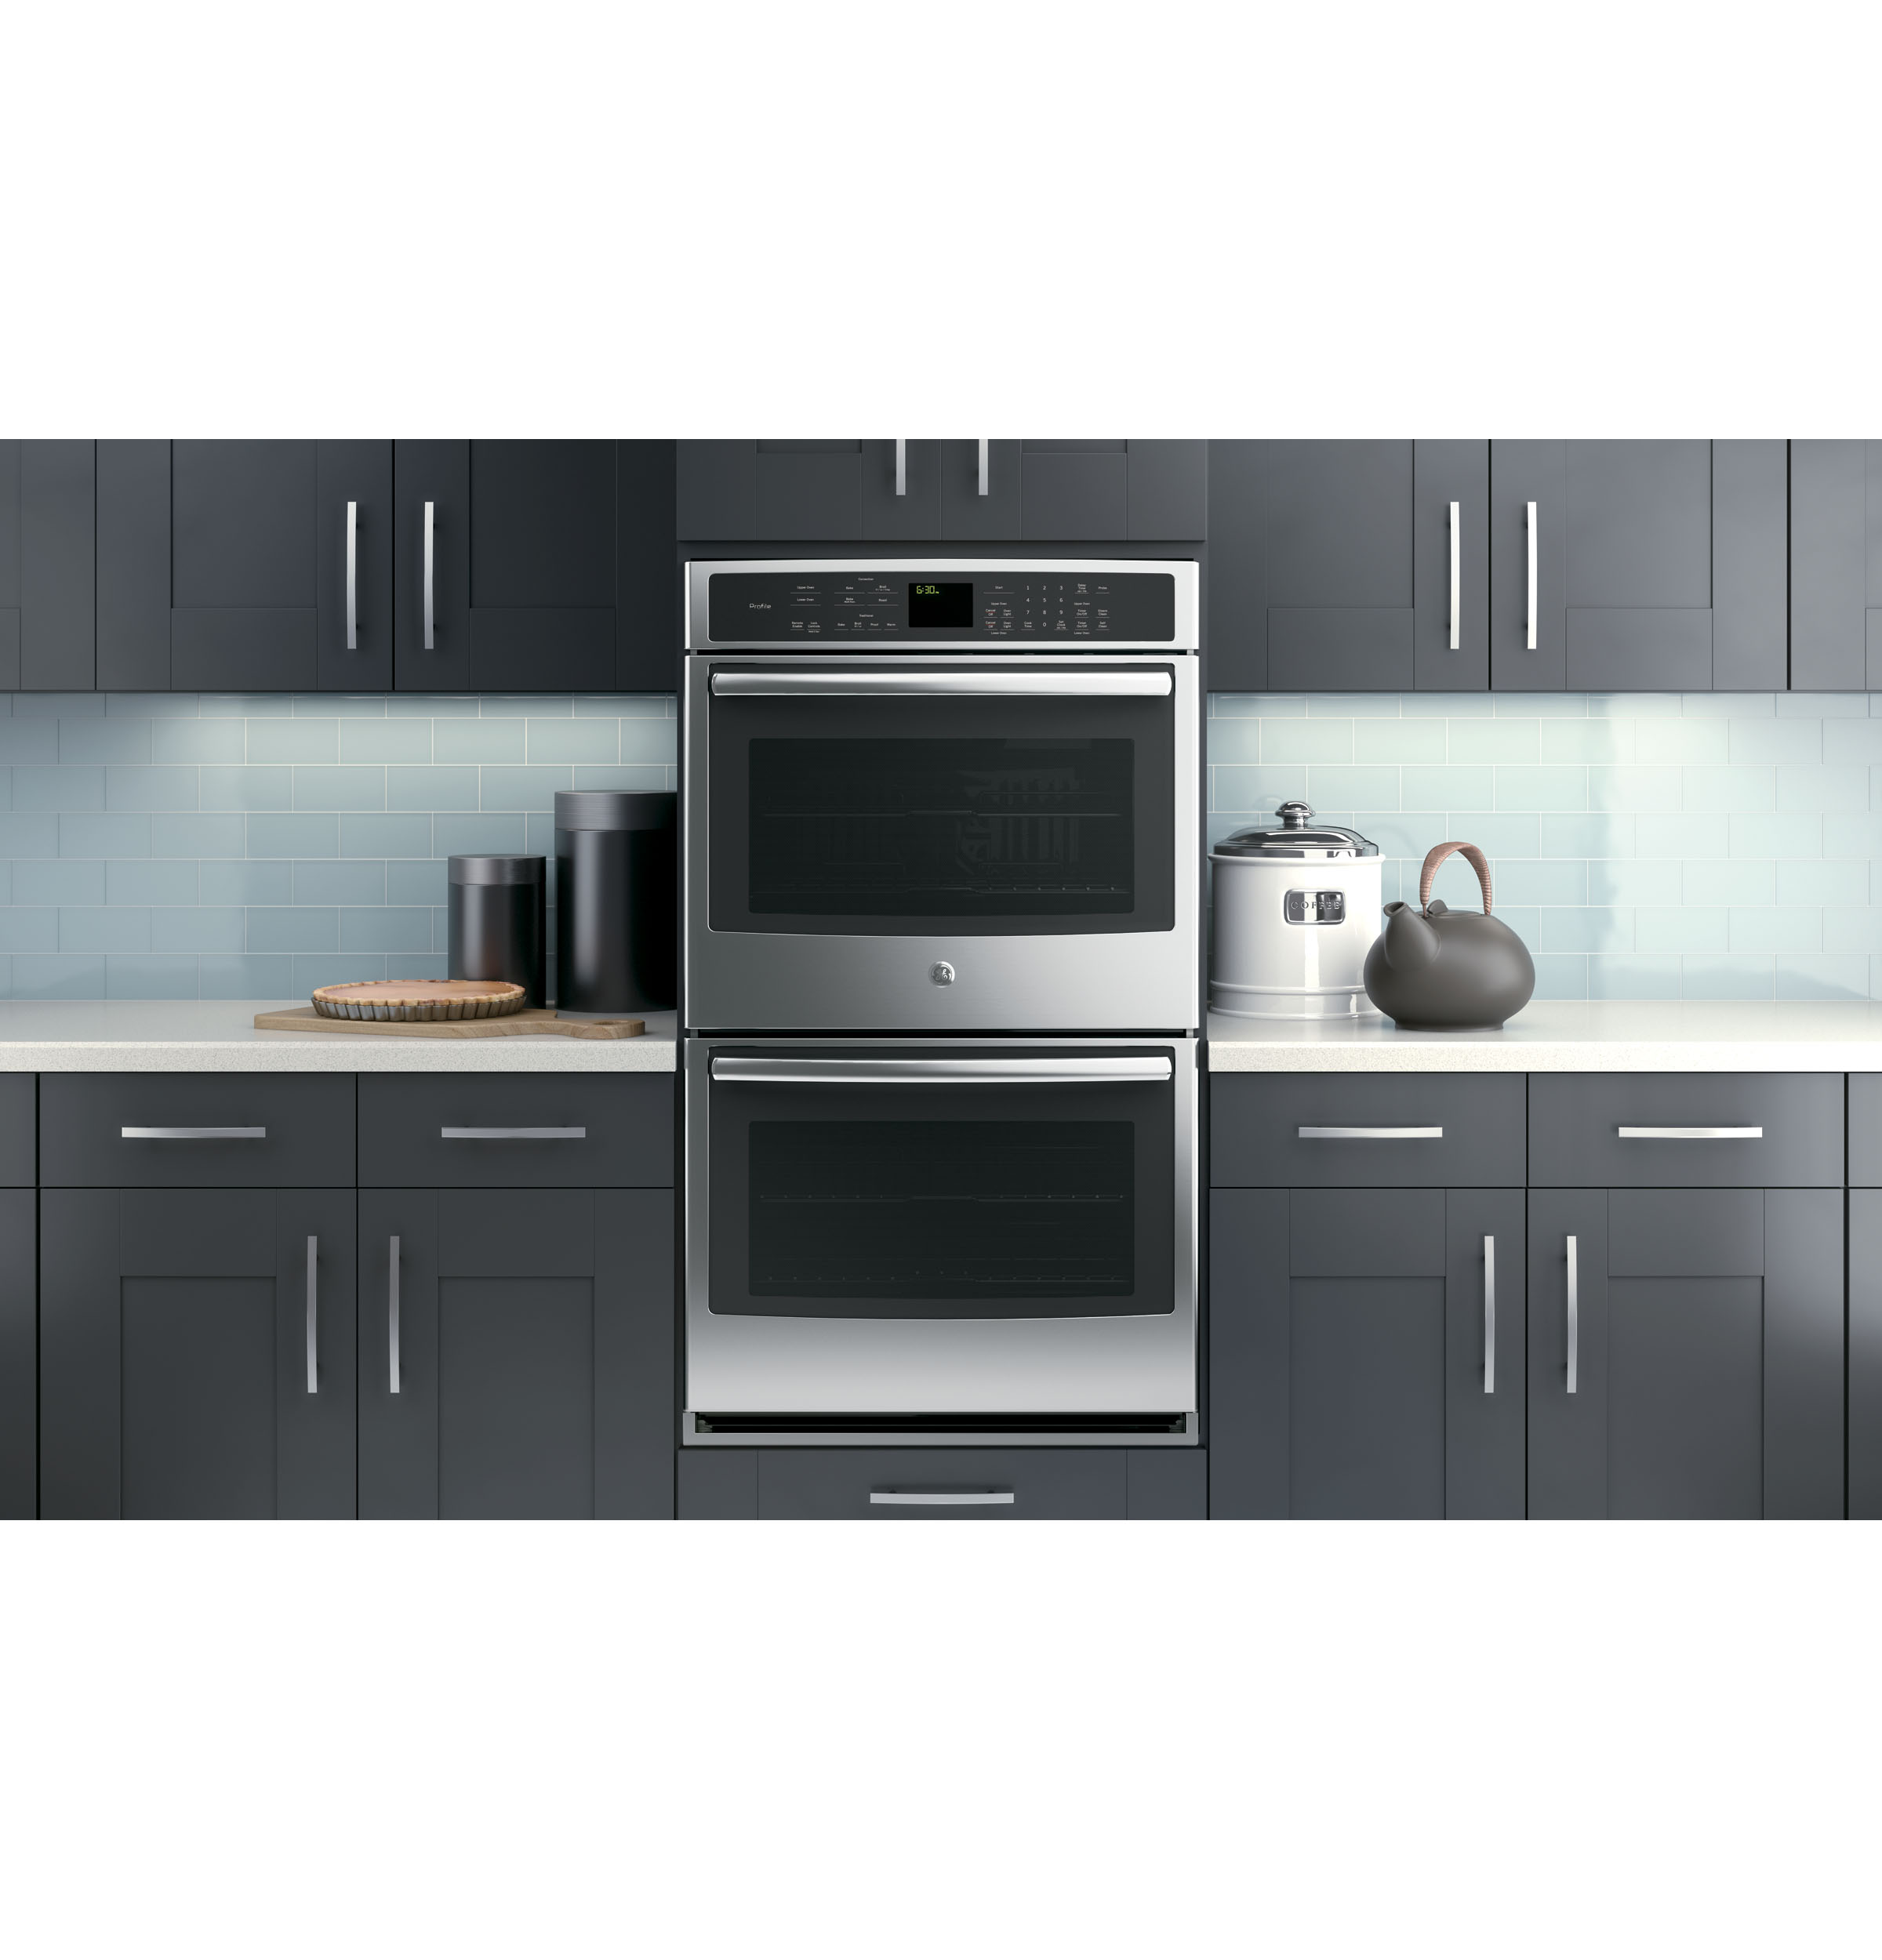 ge profile acirc cent series built in double convection wall oven product image product image